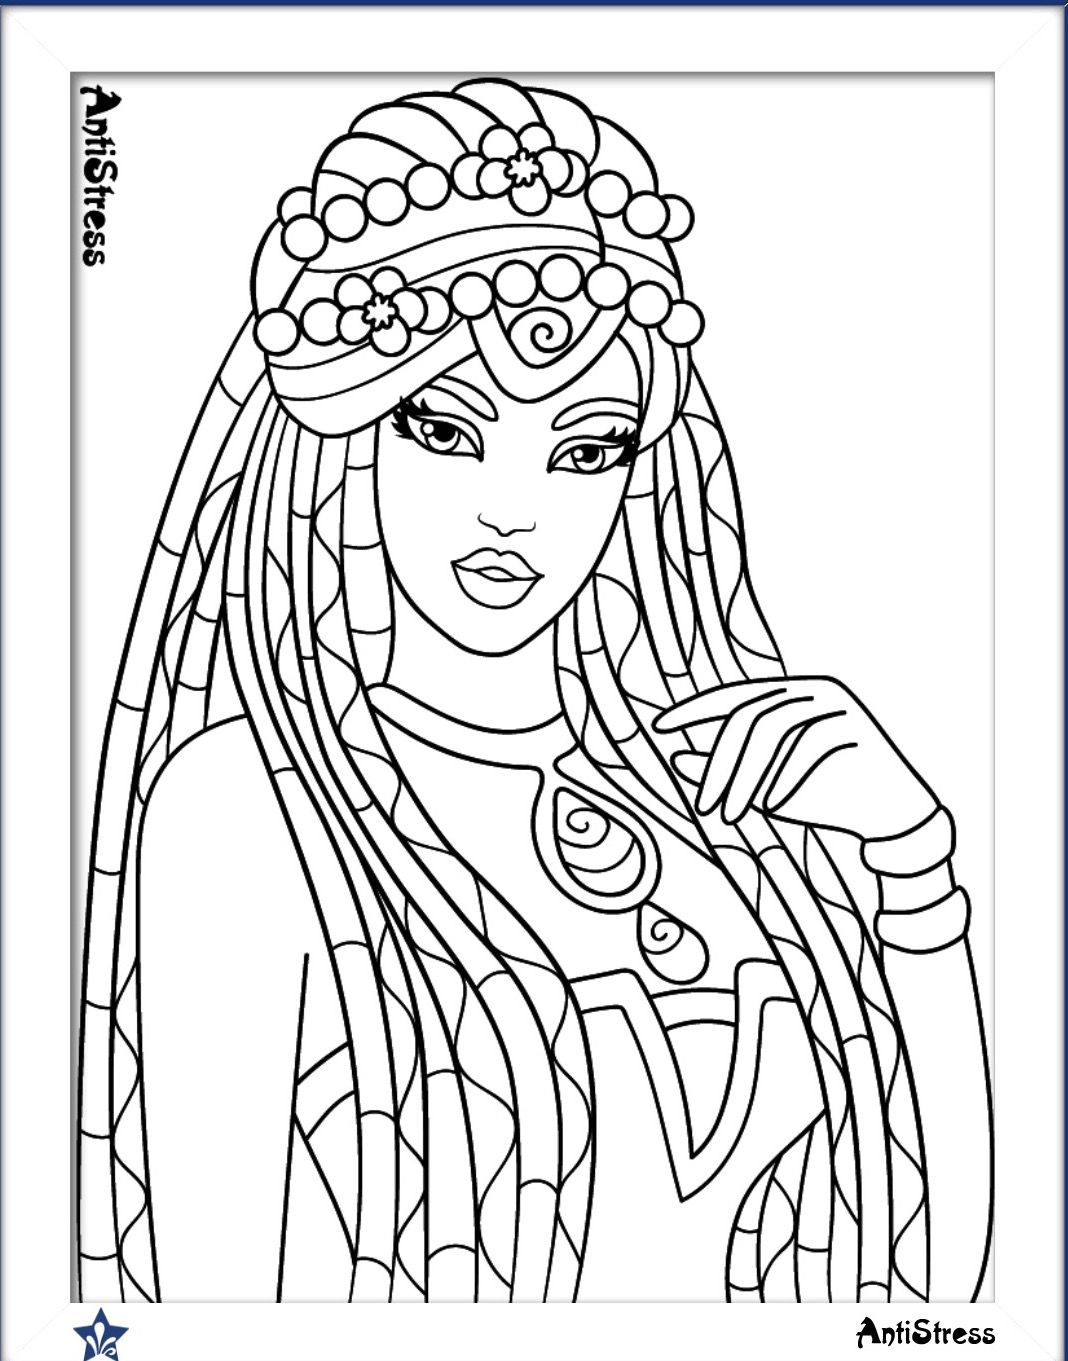 Coloring me Coloring Pages for Adults Blank coloring